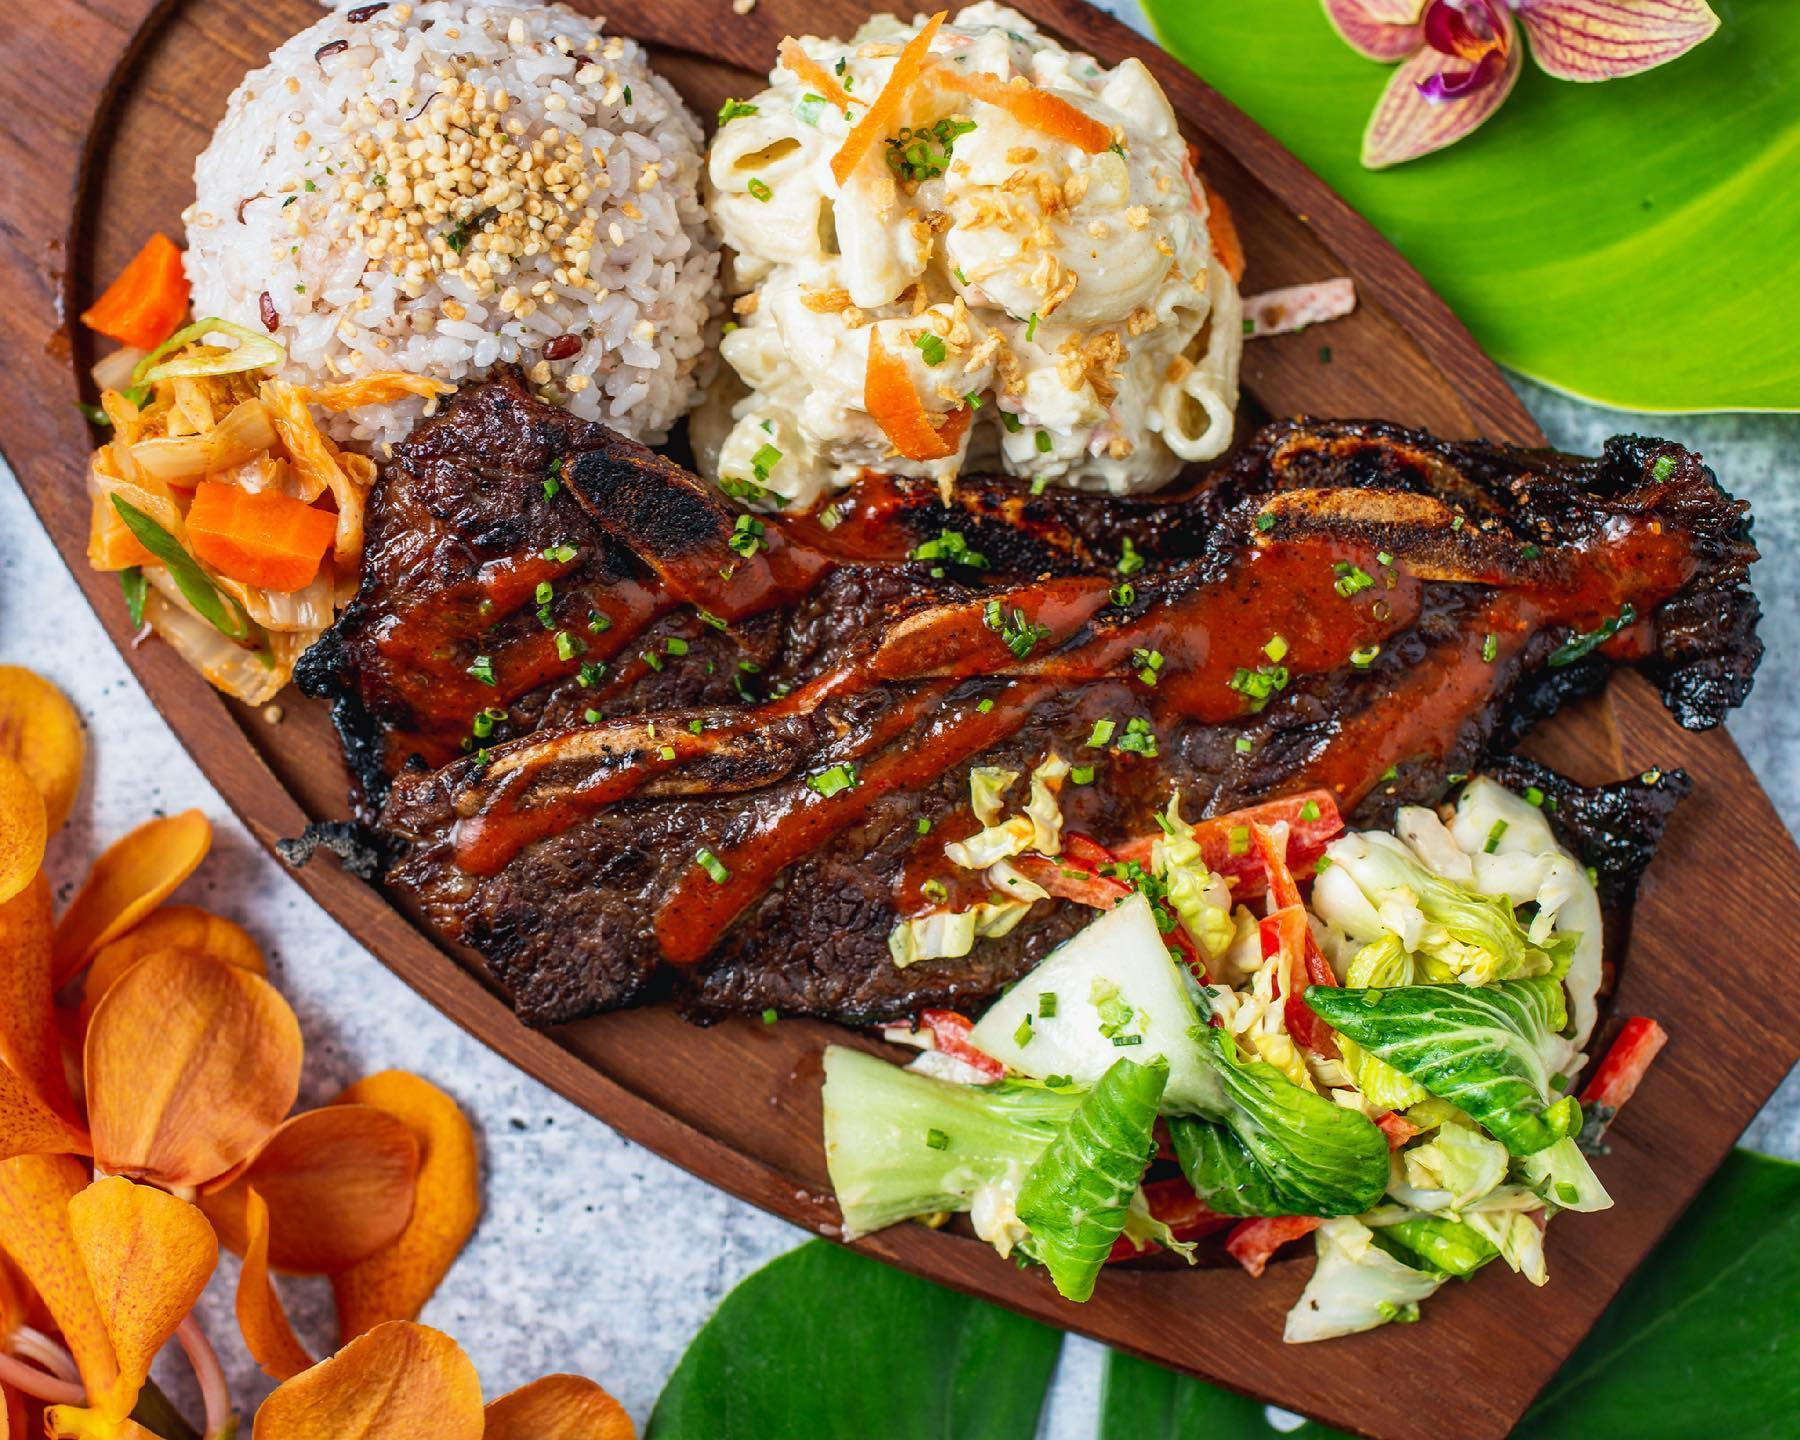 A wooden platter holds macaroni salad, rice, and short ribs with a spicy sauce at Da Pine Grinds